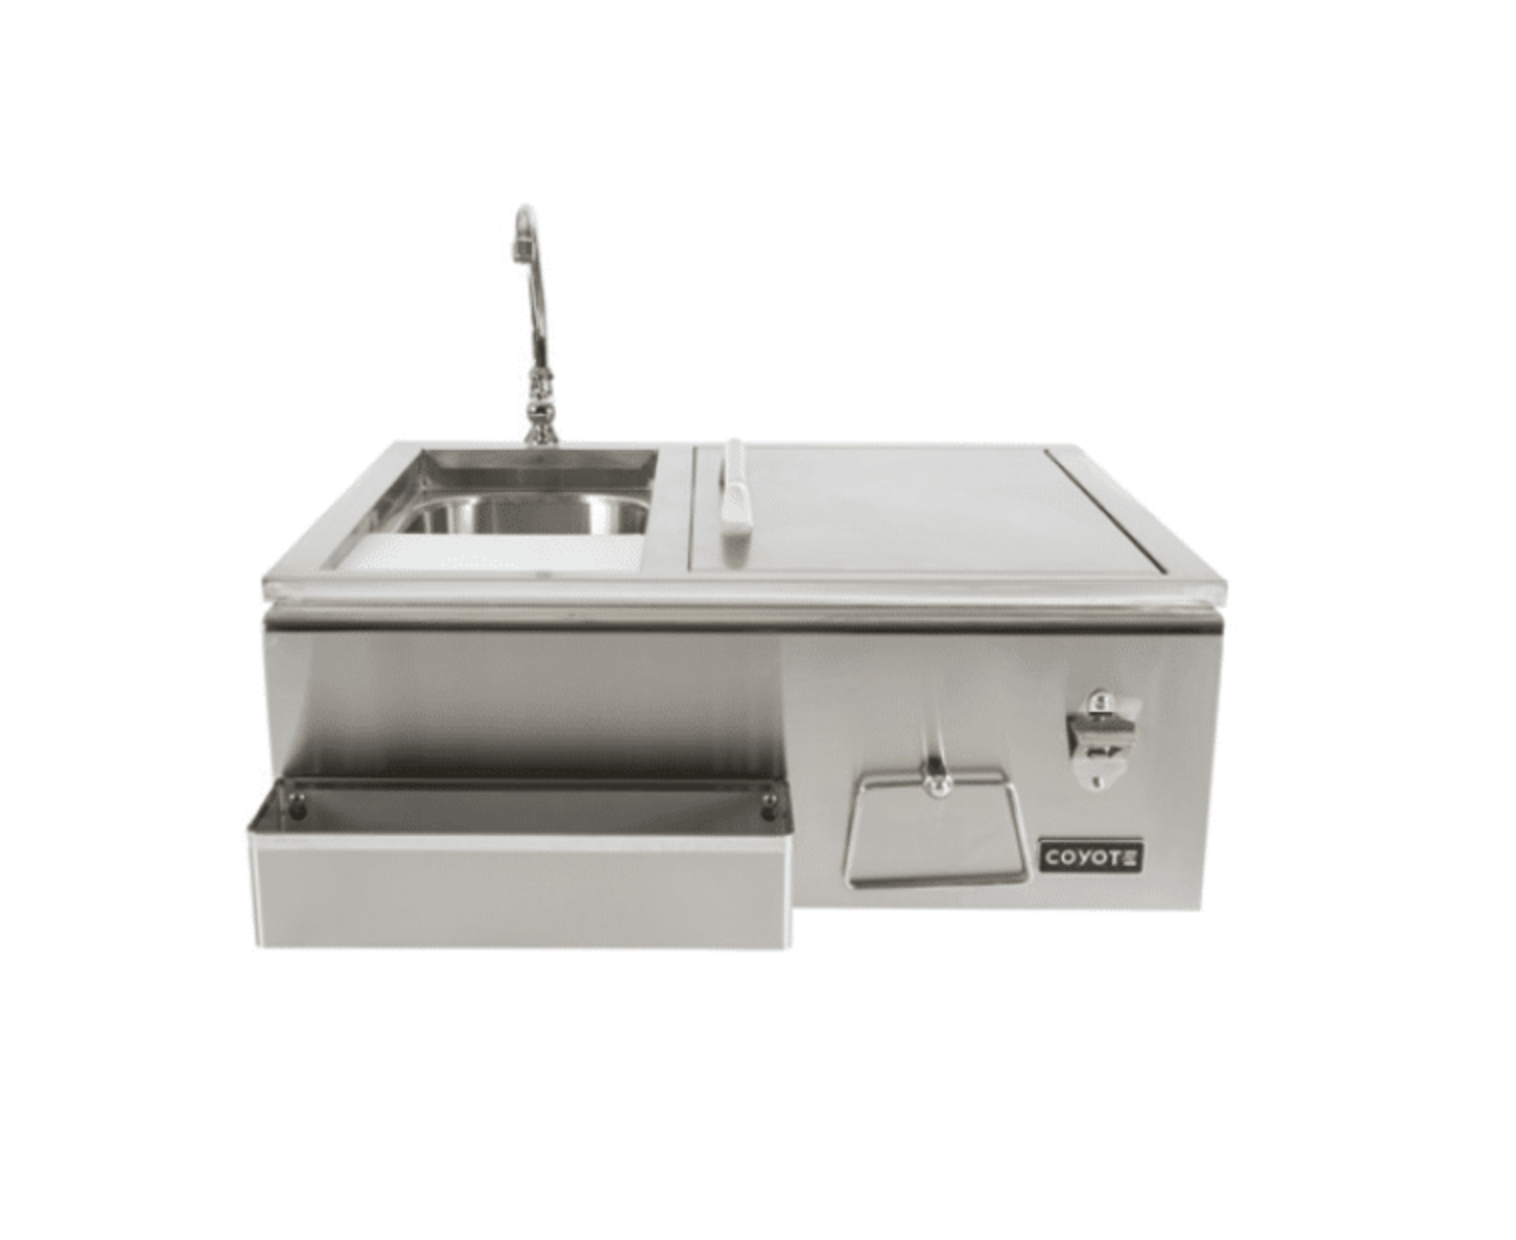 all-in-one sink by coyote. equipped with a cooler and shelf.